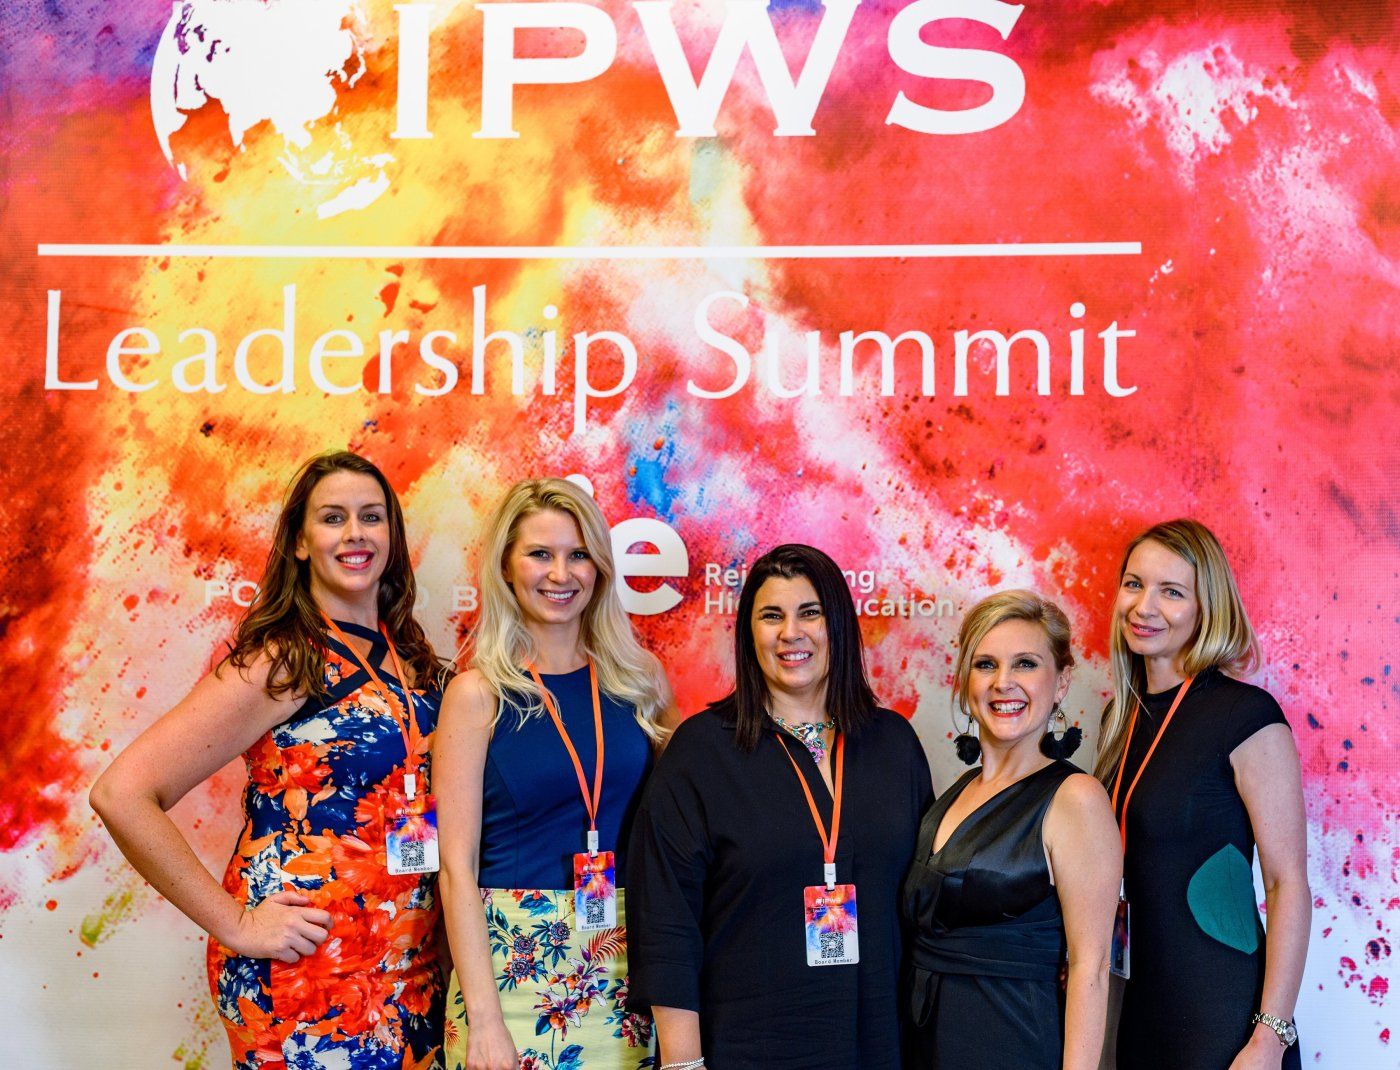 IPWS Leadership Summit Shanghaista